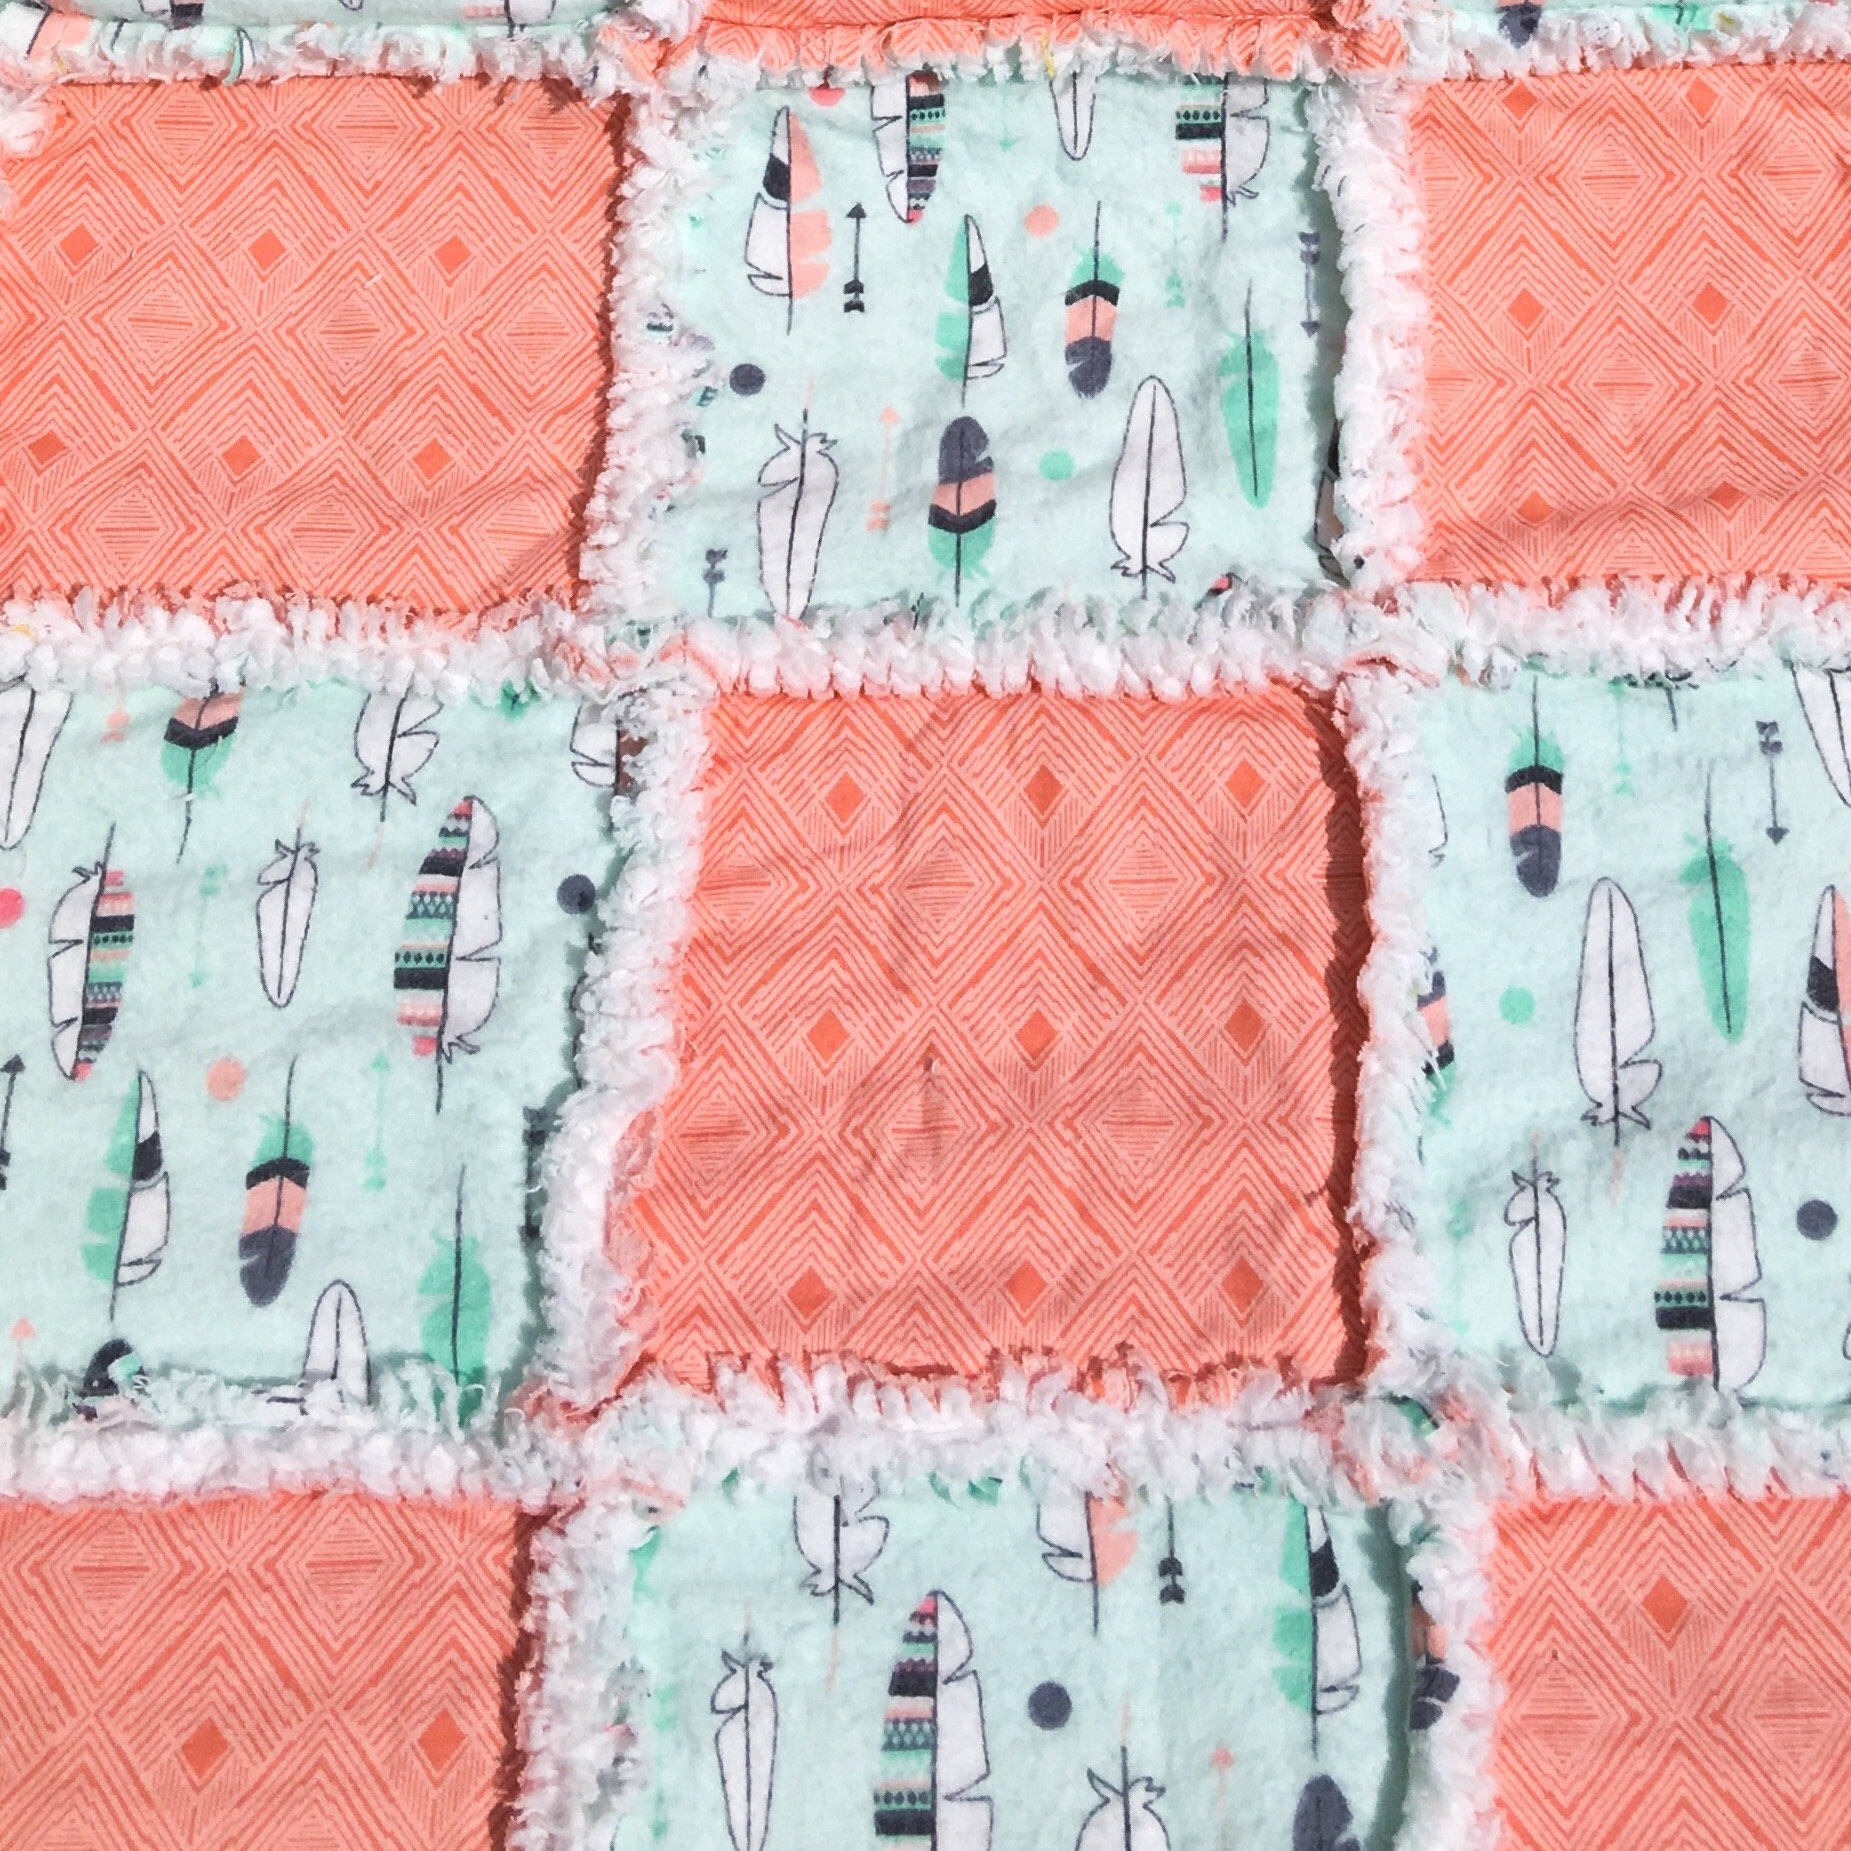 All natural cotton rag quilt in peach and mint, with feathers and patterned peach squares